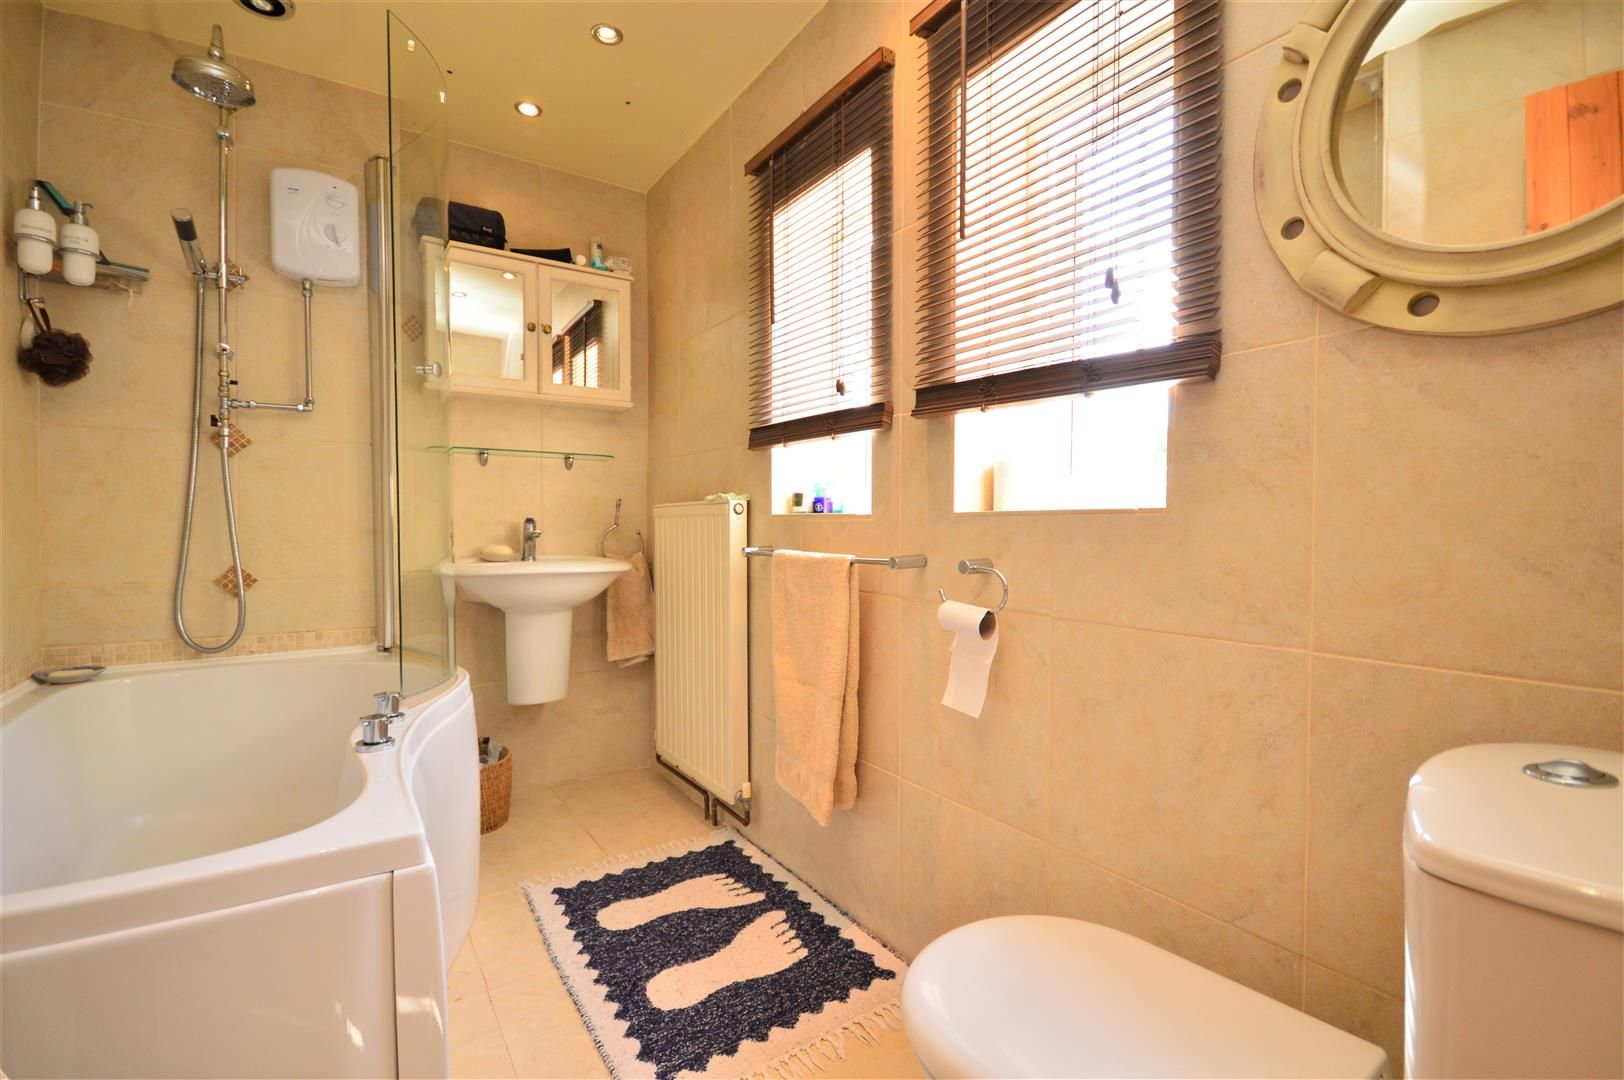 3 bed semi-detached for sale in Stretton Sugwas 14